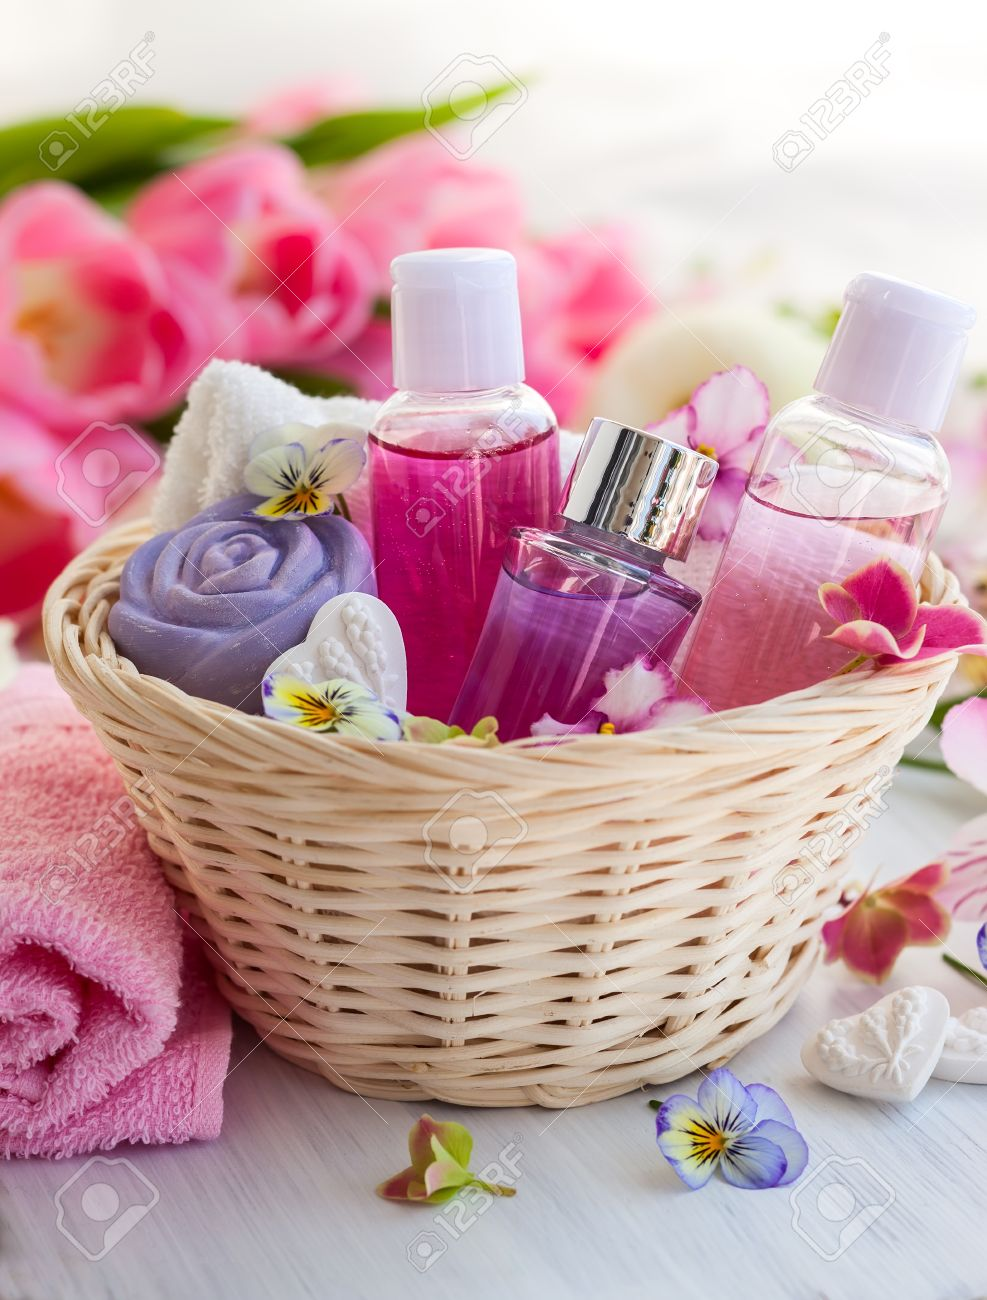 Spa Bath Toiletries Set In Basket With Fresh Flowers Stock Photo ...